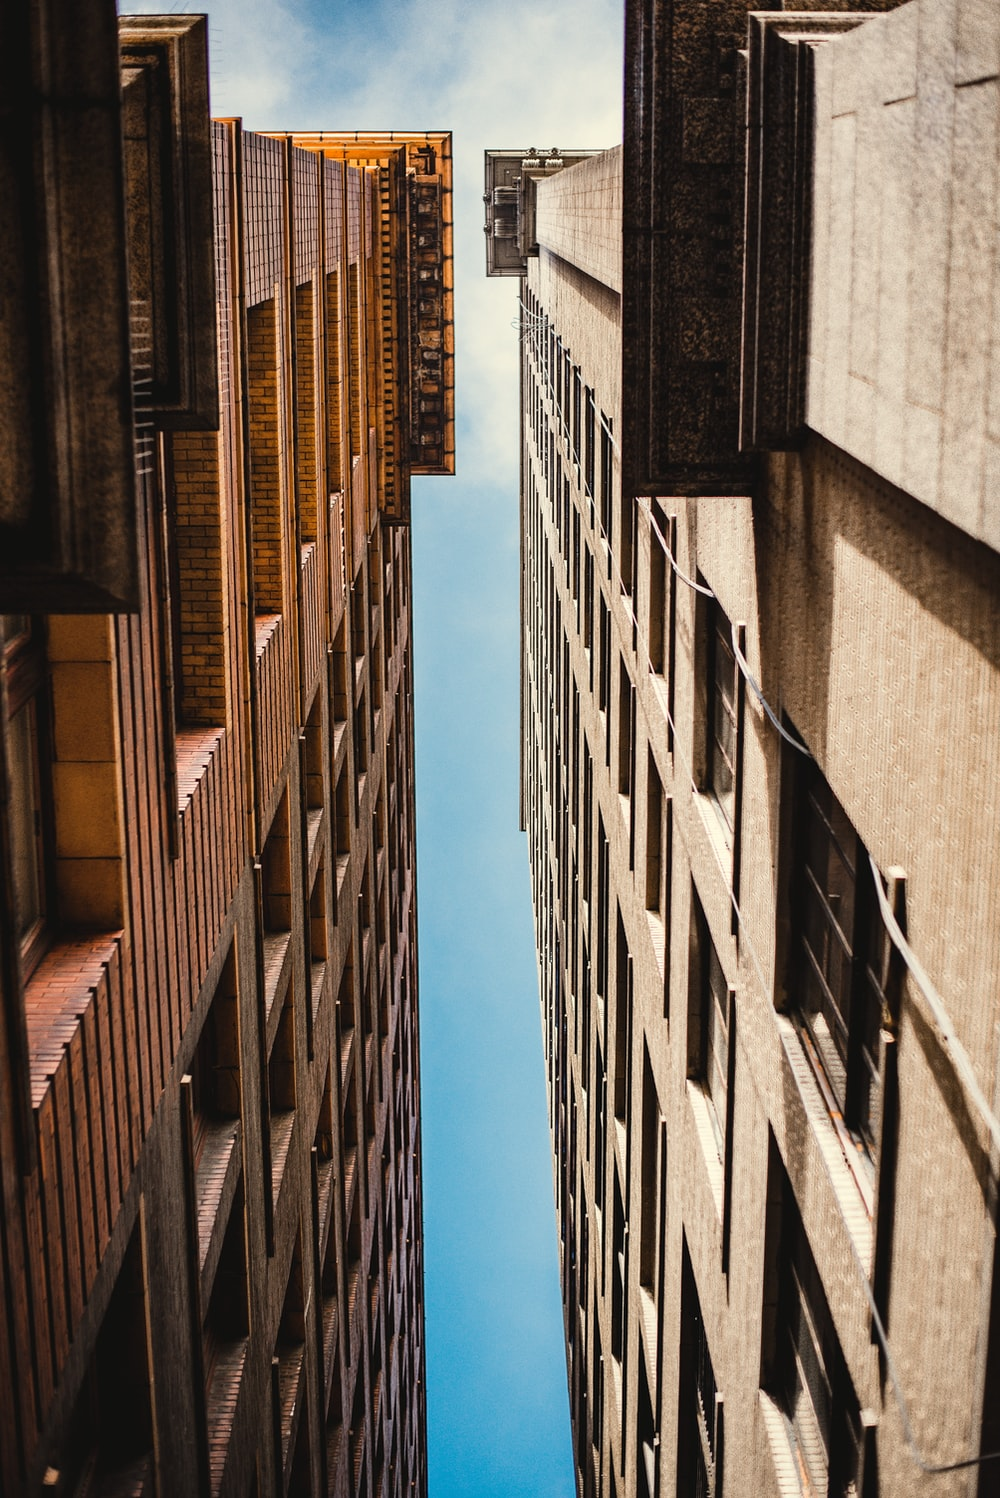 low angle photography of concrete buildings during daytime